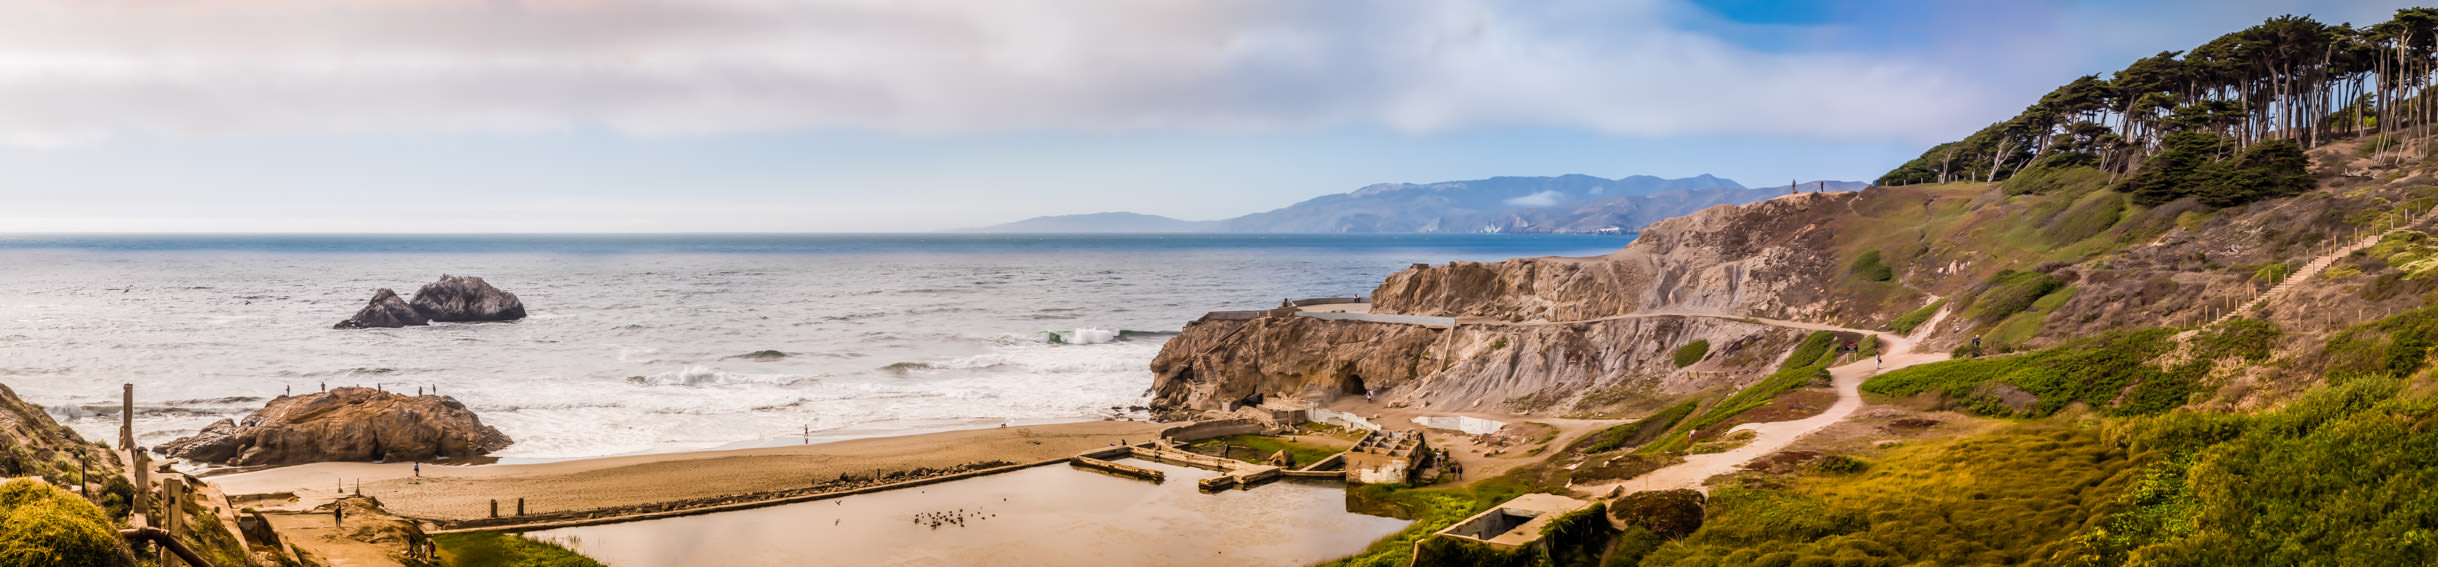 The ruins of San Francisco's Sutro Baths, once the world's largest indoor swimming pool, lie near Seal Rock at Lands End.